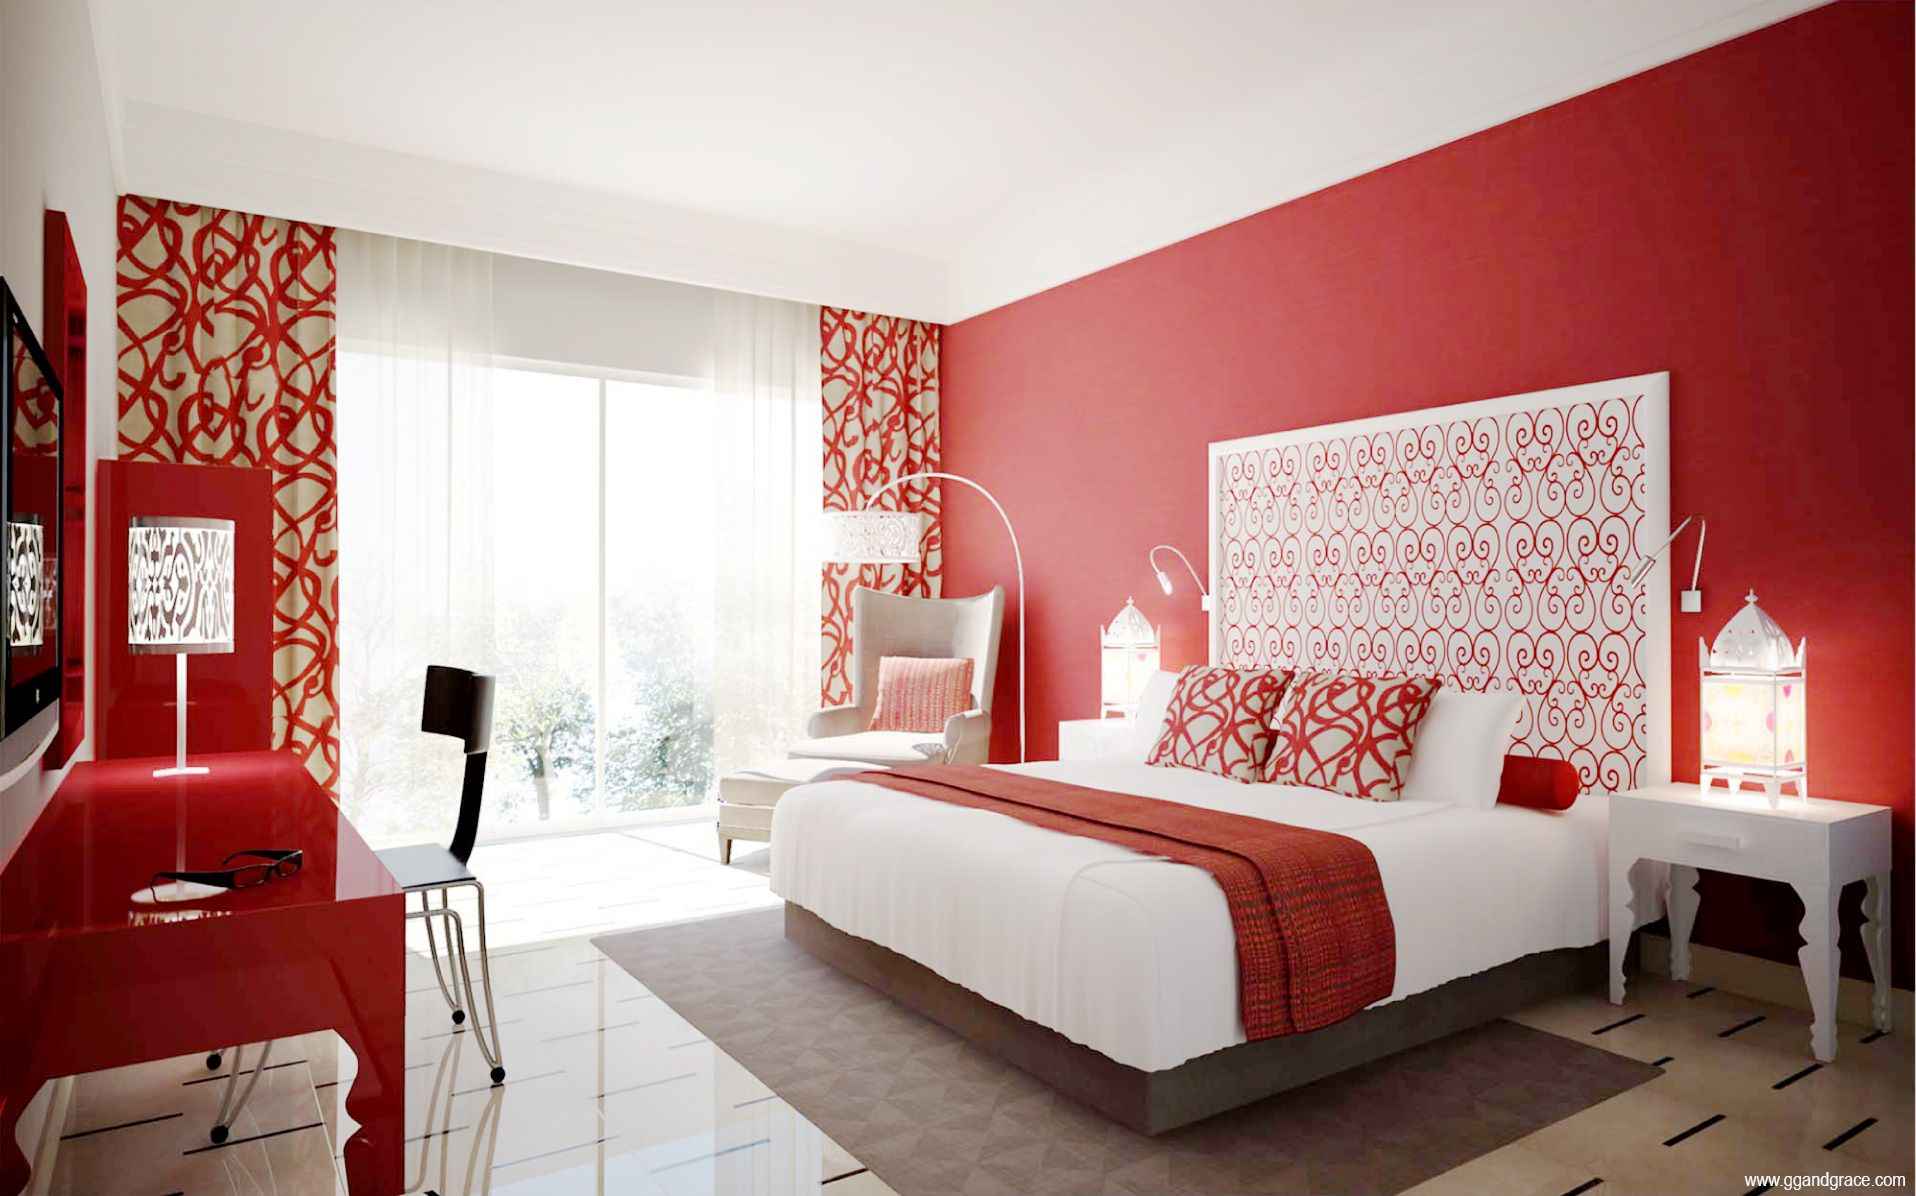 Red Bedroom Designs Ecos Paints In Tropical Heat Would Work Well For This Design